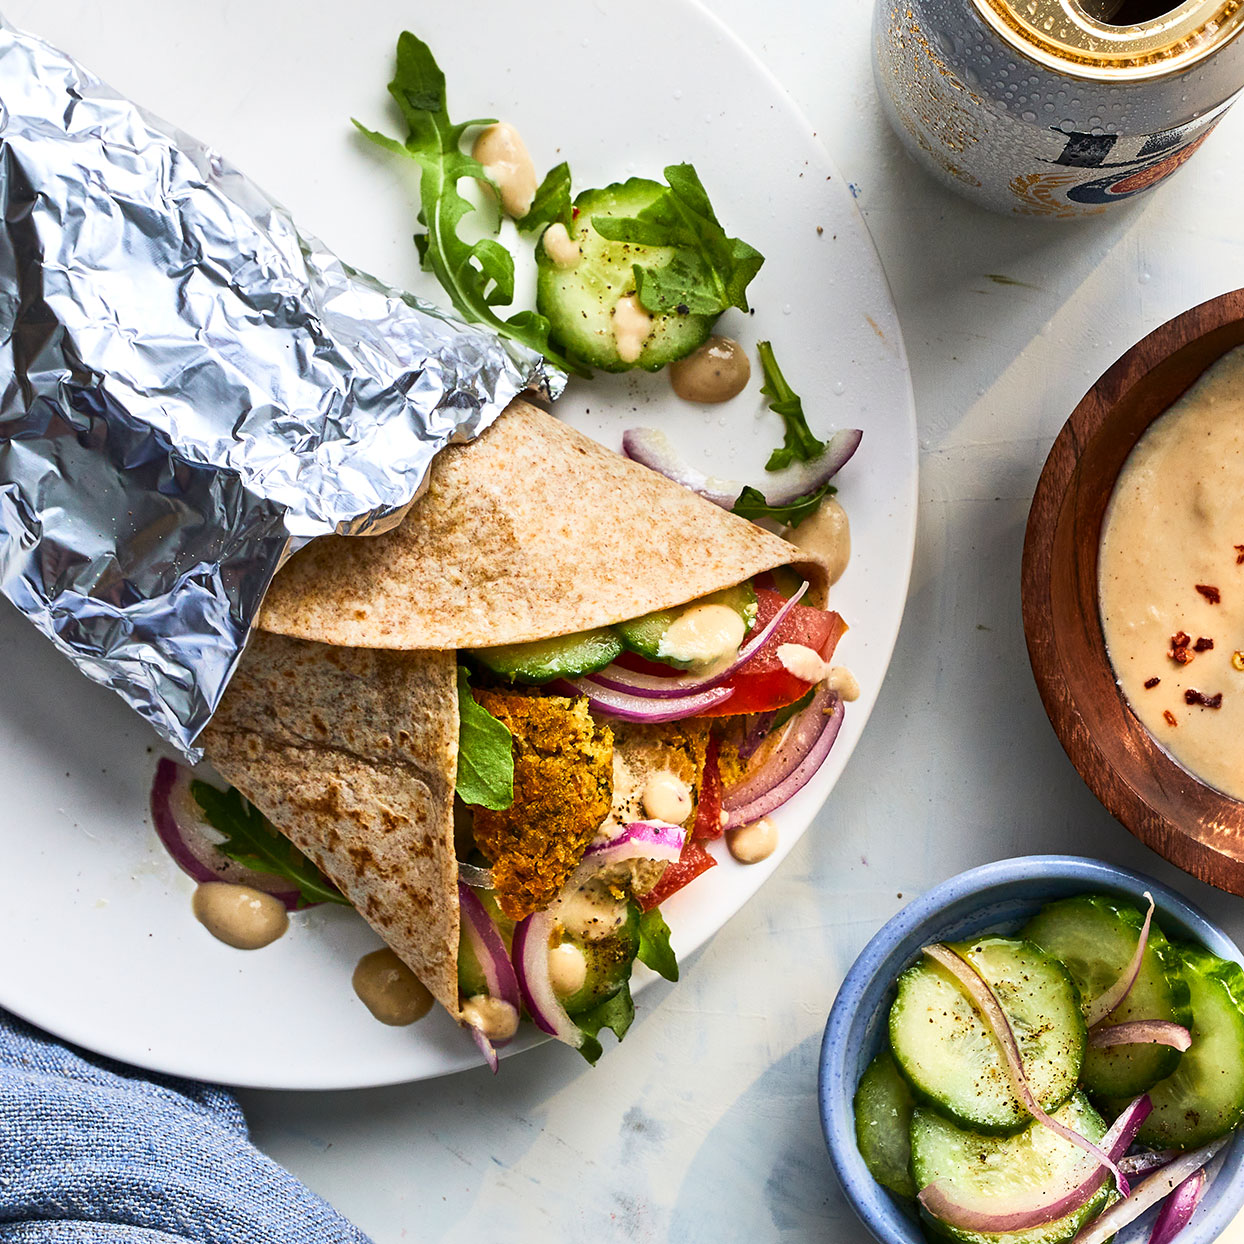 This street-style falafel sandwich is herbaceous, tangy and rich. The falafel gets nice and crispy in the oven while the veggies inside keep it simple and fresh. Make the tahini sauce (see Associated Recipes) ahead of time for easy prep. Wrapping the sandwich in foil makes it a perfect bring-along lunch and helps hold it together for eating on the go. Source: EatingWell.com, March 2020